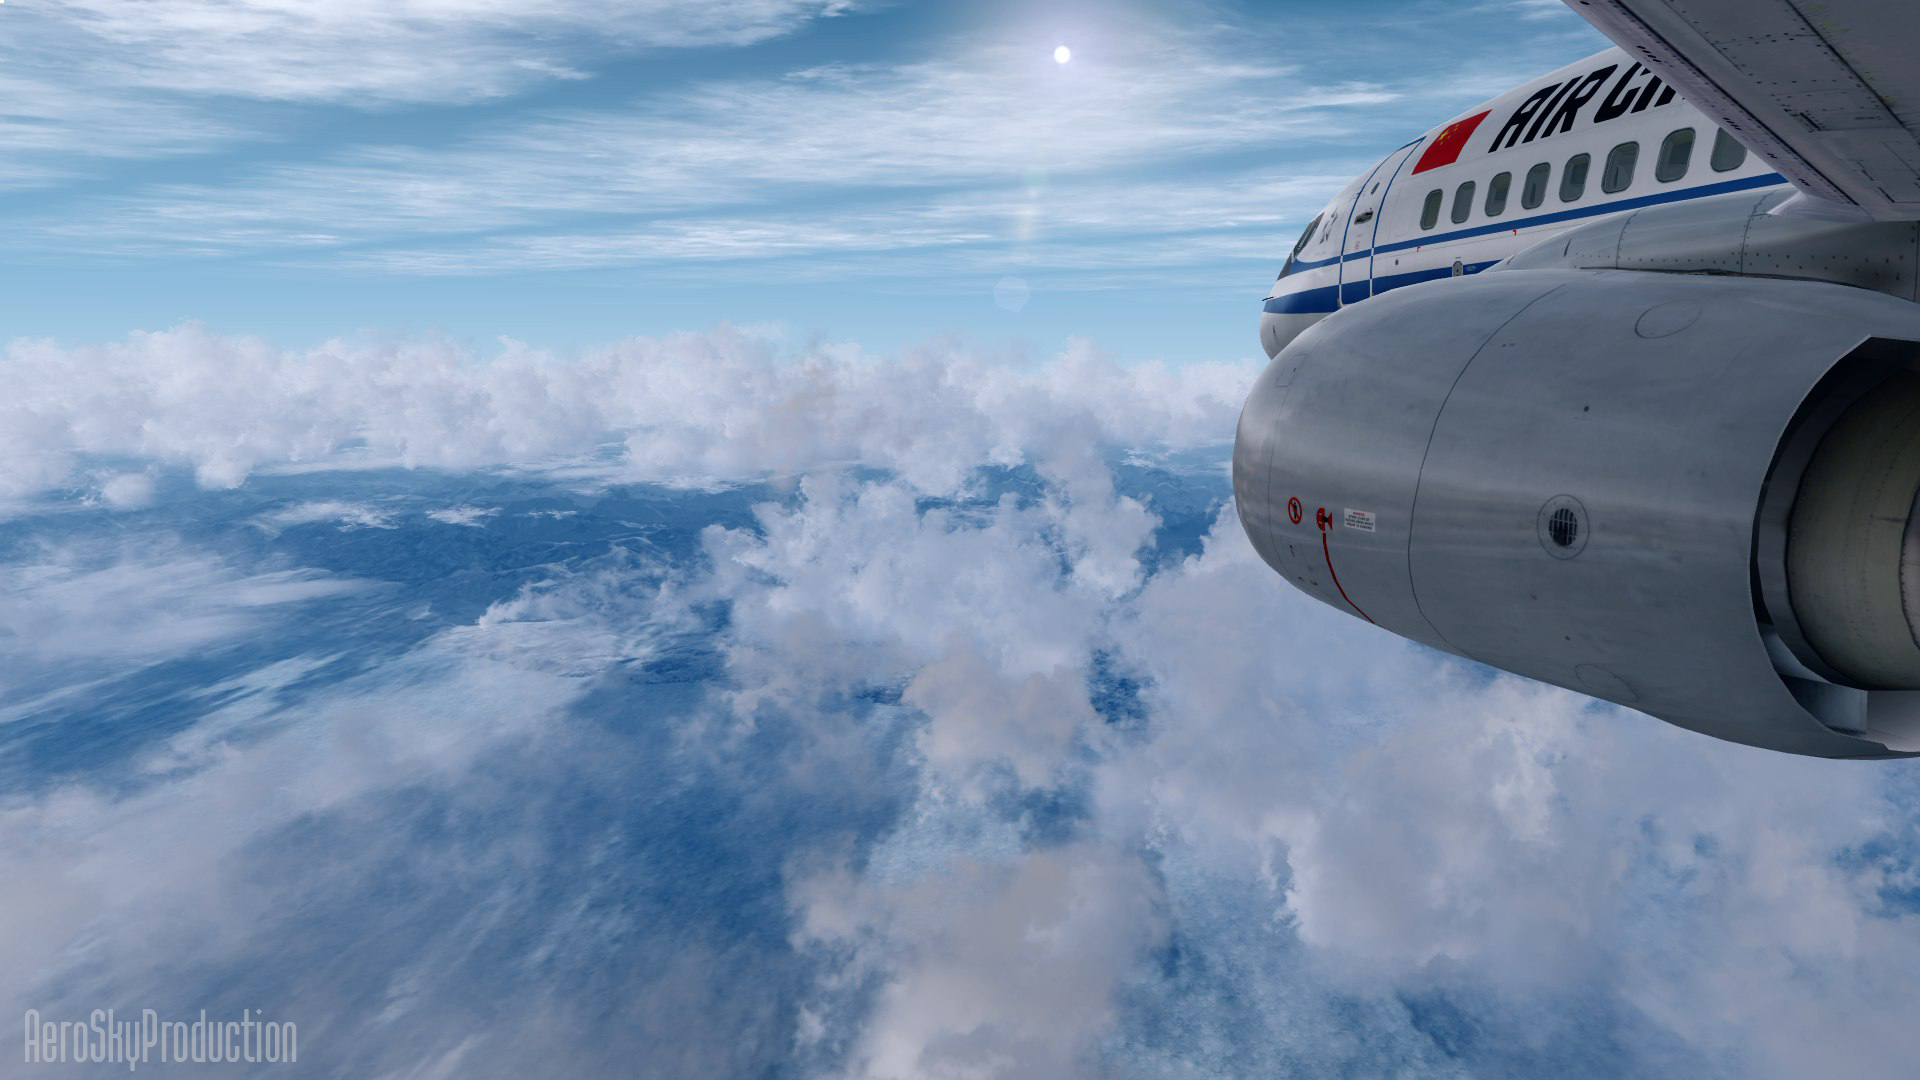 AEROSKY PRODUCTION - COZY UNIVERSAL CLOUD FSX P3D